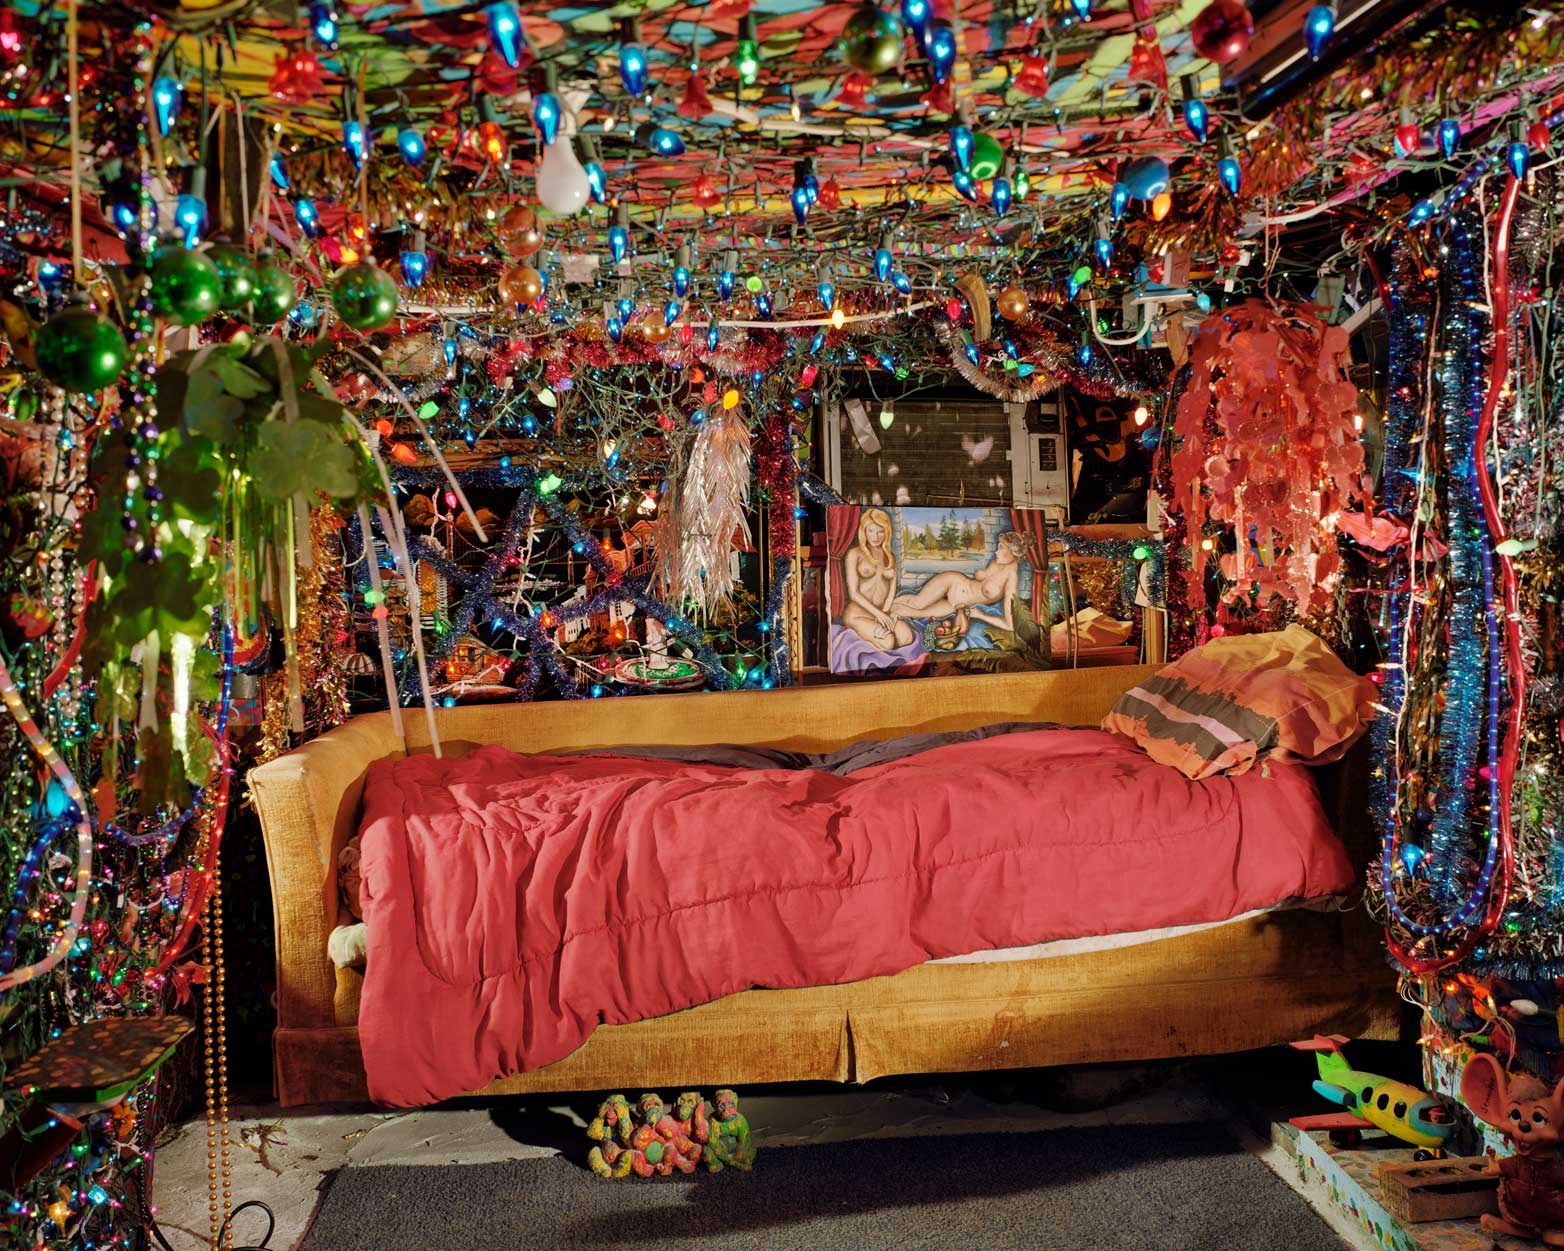 Herman's Bed, Kenner Louisiana ( 2002)  Alec Soth, American (b. 1969)  Chromogenic print  Lent by the Minneapolis Institute of Art, Gift of the artist and Dan and Mary Solomon